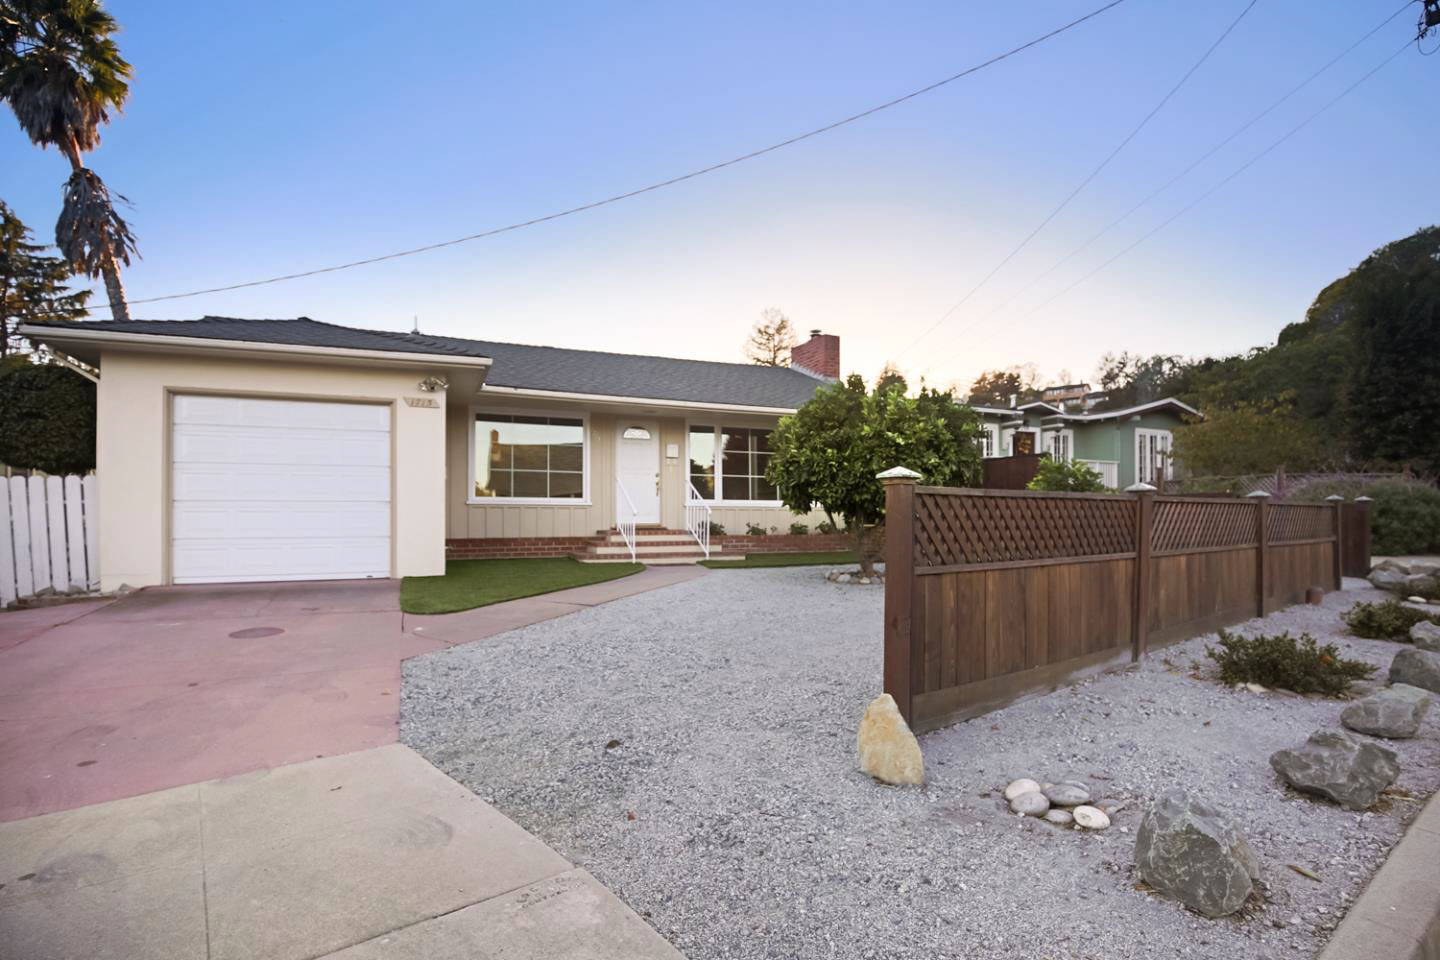 **SOLD 1715 Bay Street, Santa Cruz • $750,000  3 Bedroom, 2 Bathroom • 1,237 Sq. Ft.